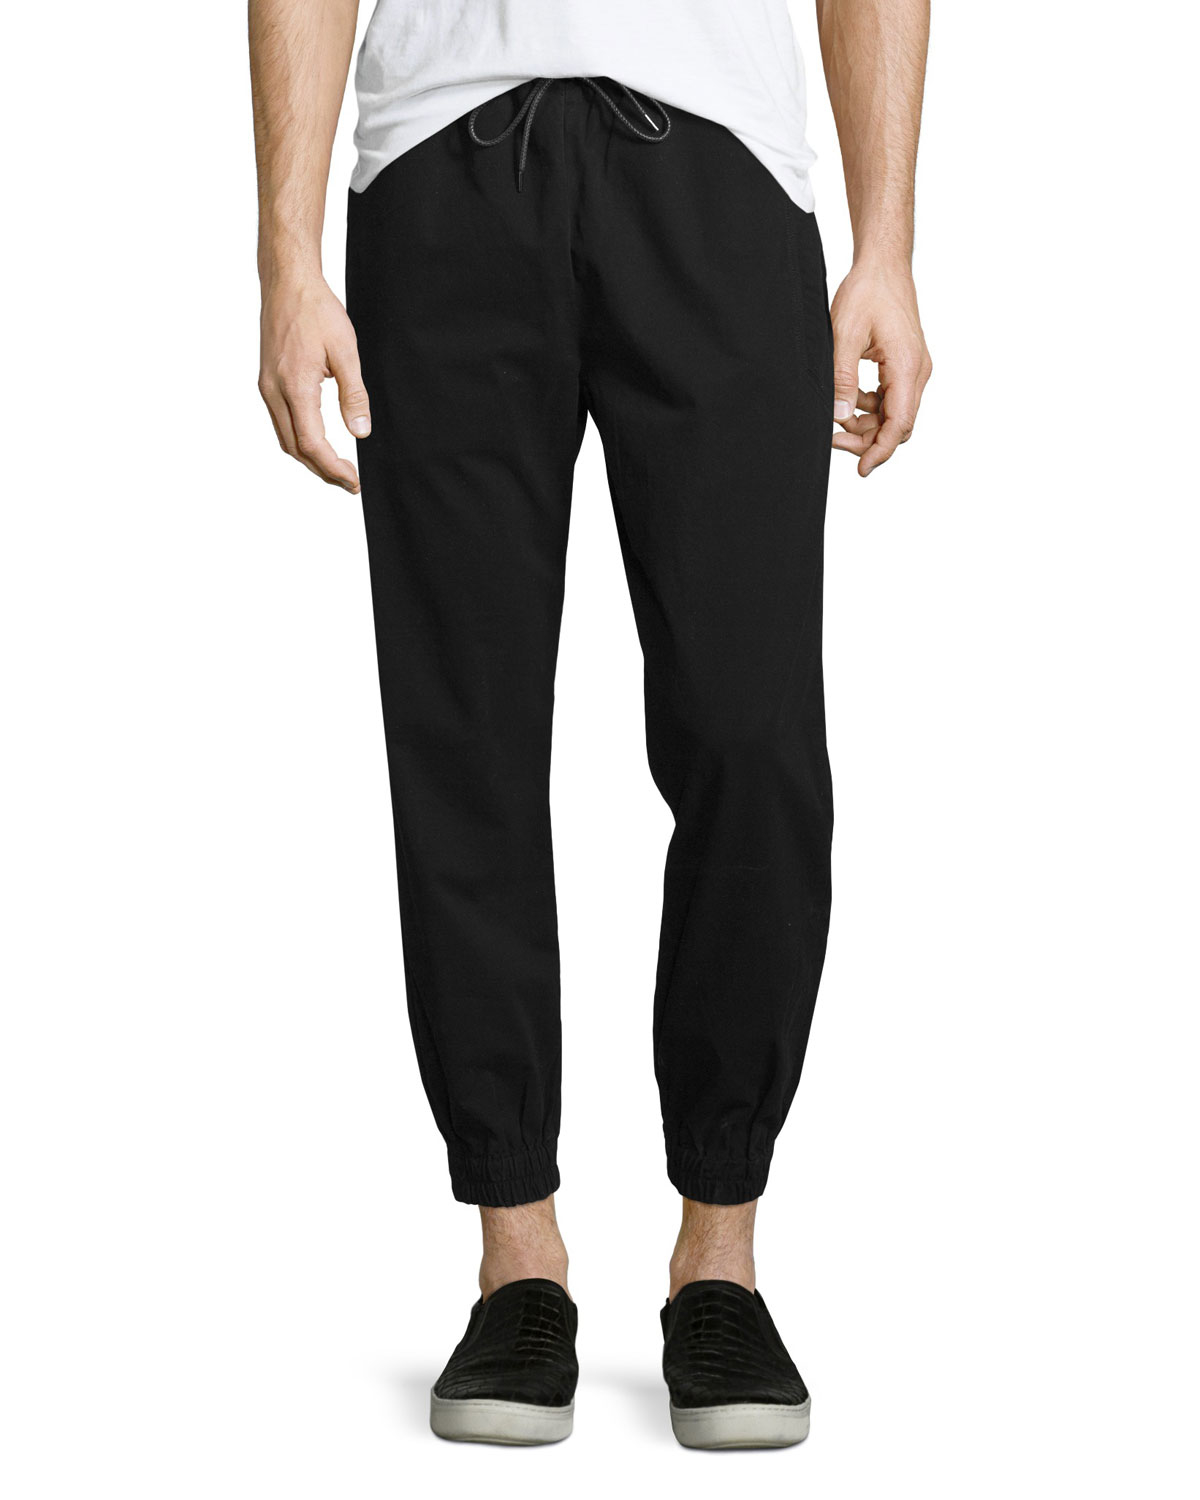 Publish Sprinter Jogger Pants. Made by California-based brand Publish exclusively for Urban Outfitters, these Sprinter Jogger Pants are roomy enough to ensure you feel relaxed and comfortable, but slim enough that you could wear them somewhere other than the gym. Purchase: $